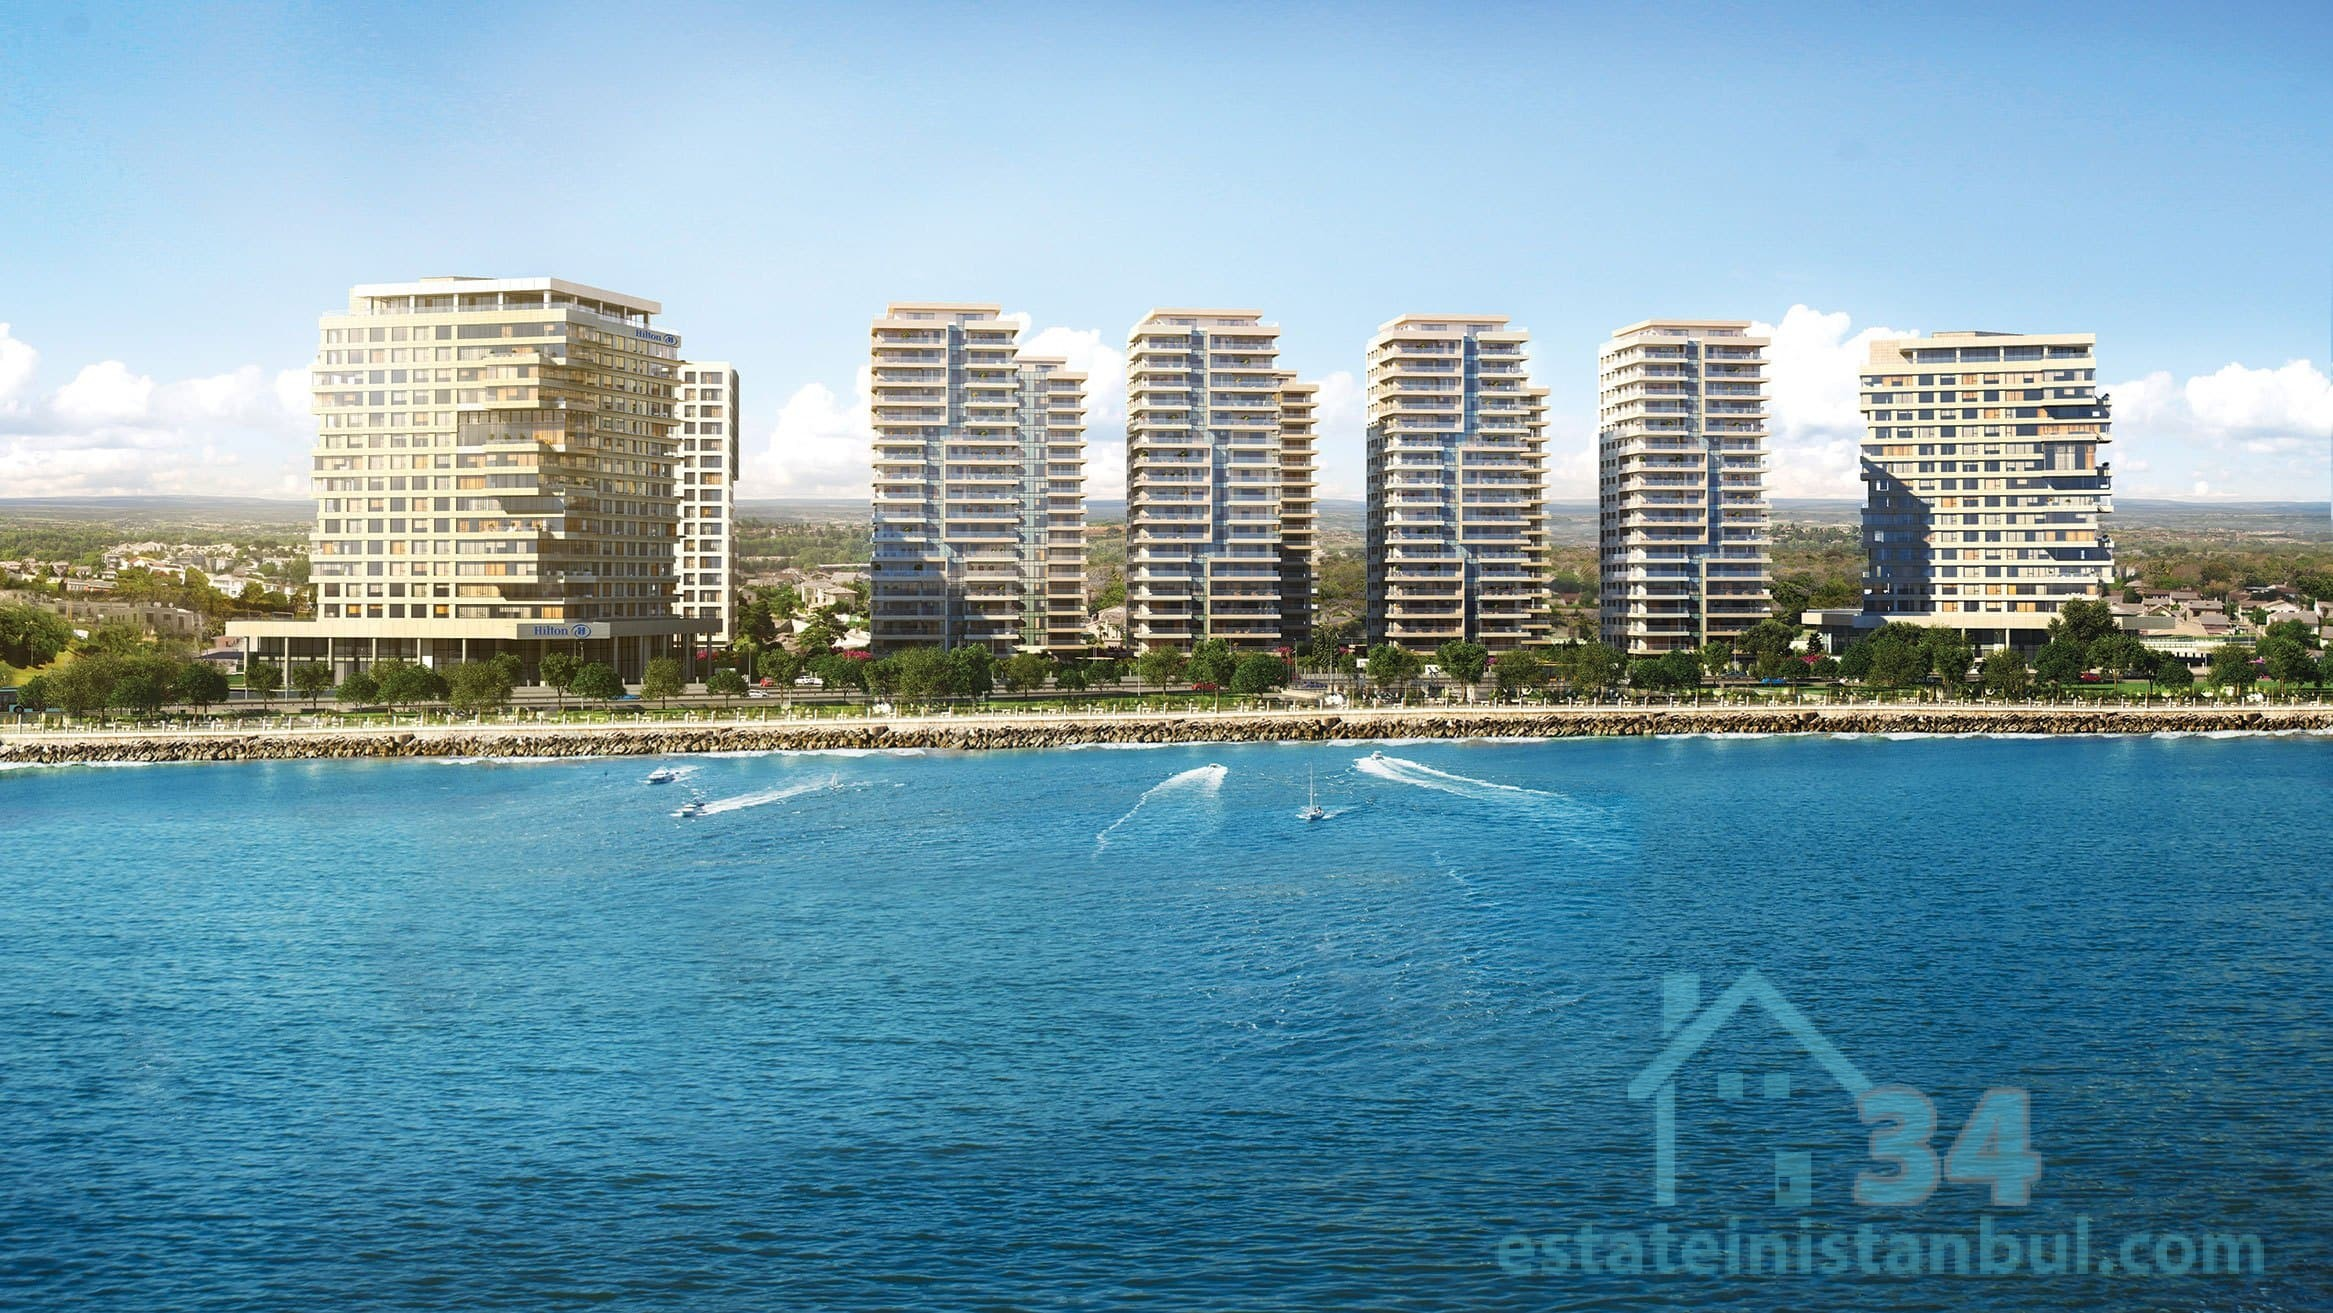 Newly Built Modern & Luxurious TWO Bedroom Apartments By The Sea In The Heart Of Istanbul